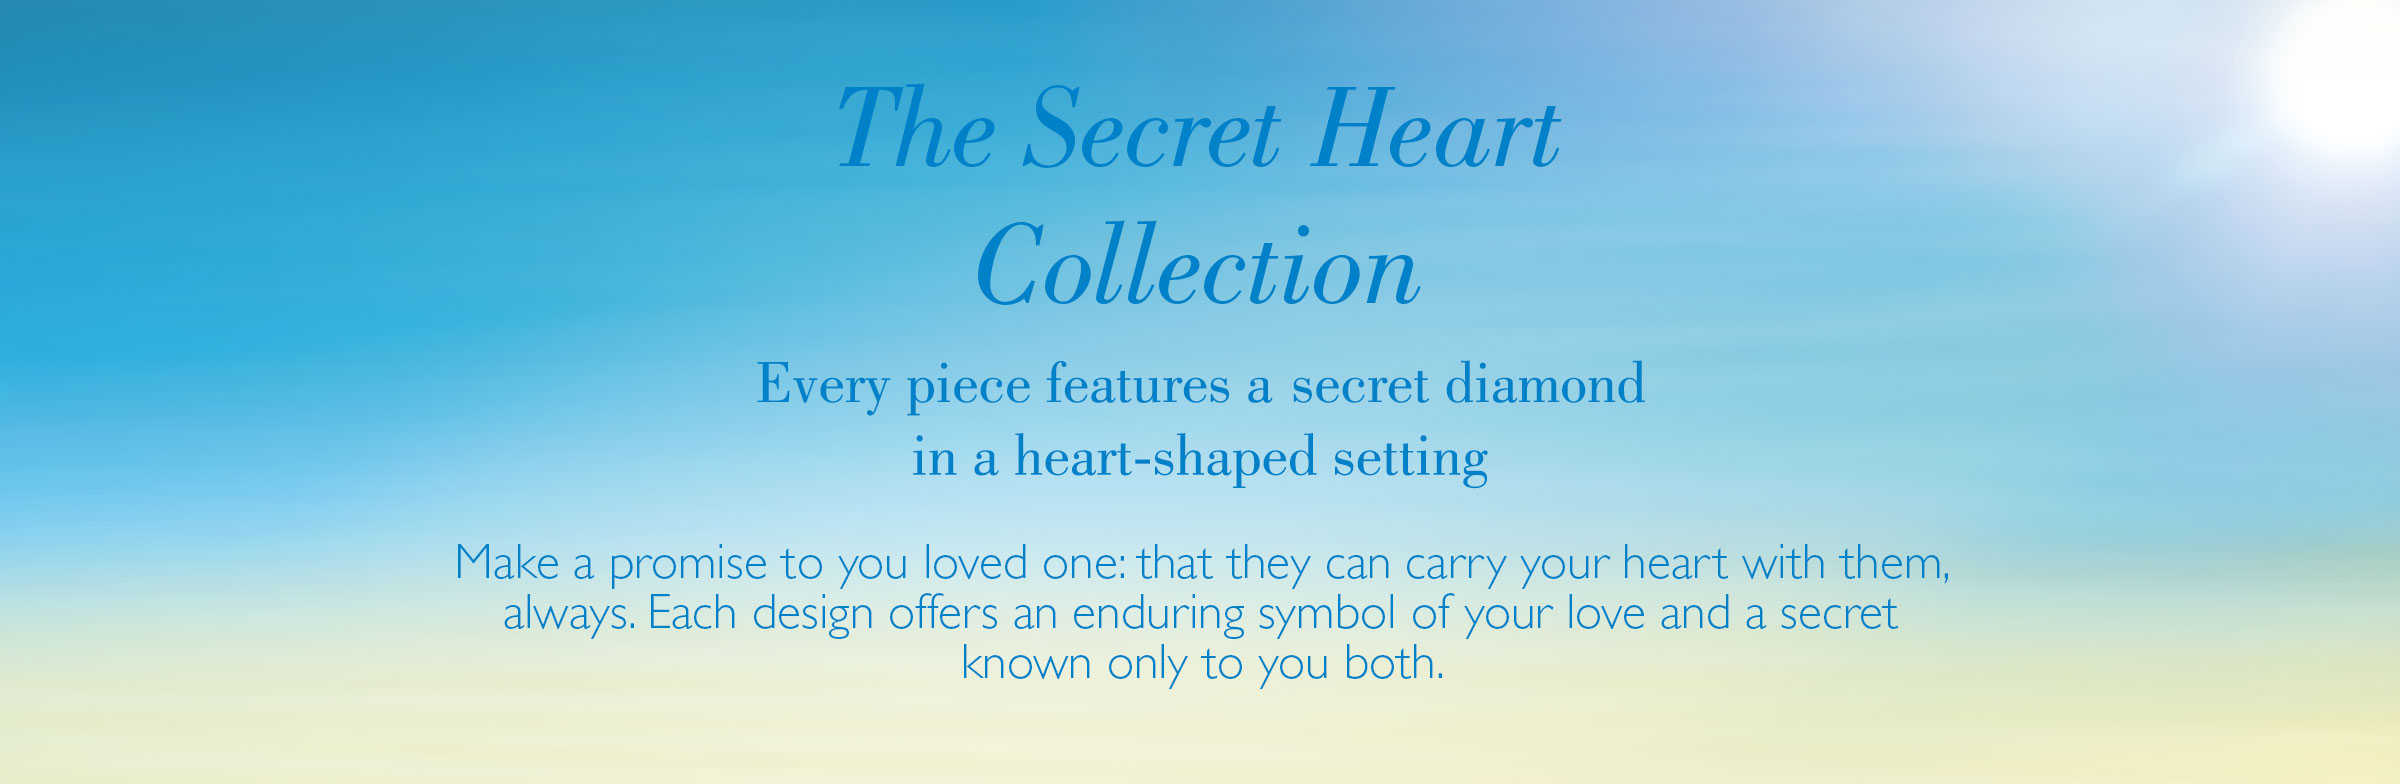 The Secret Heart Collection